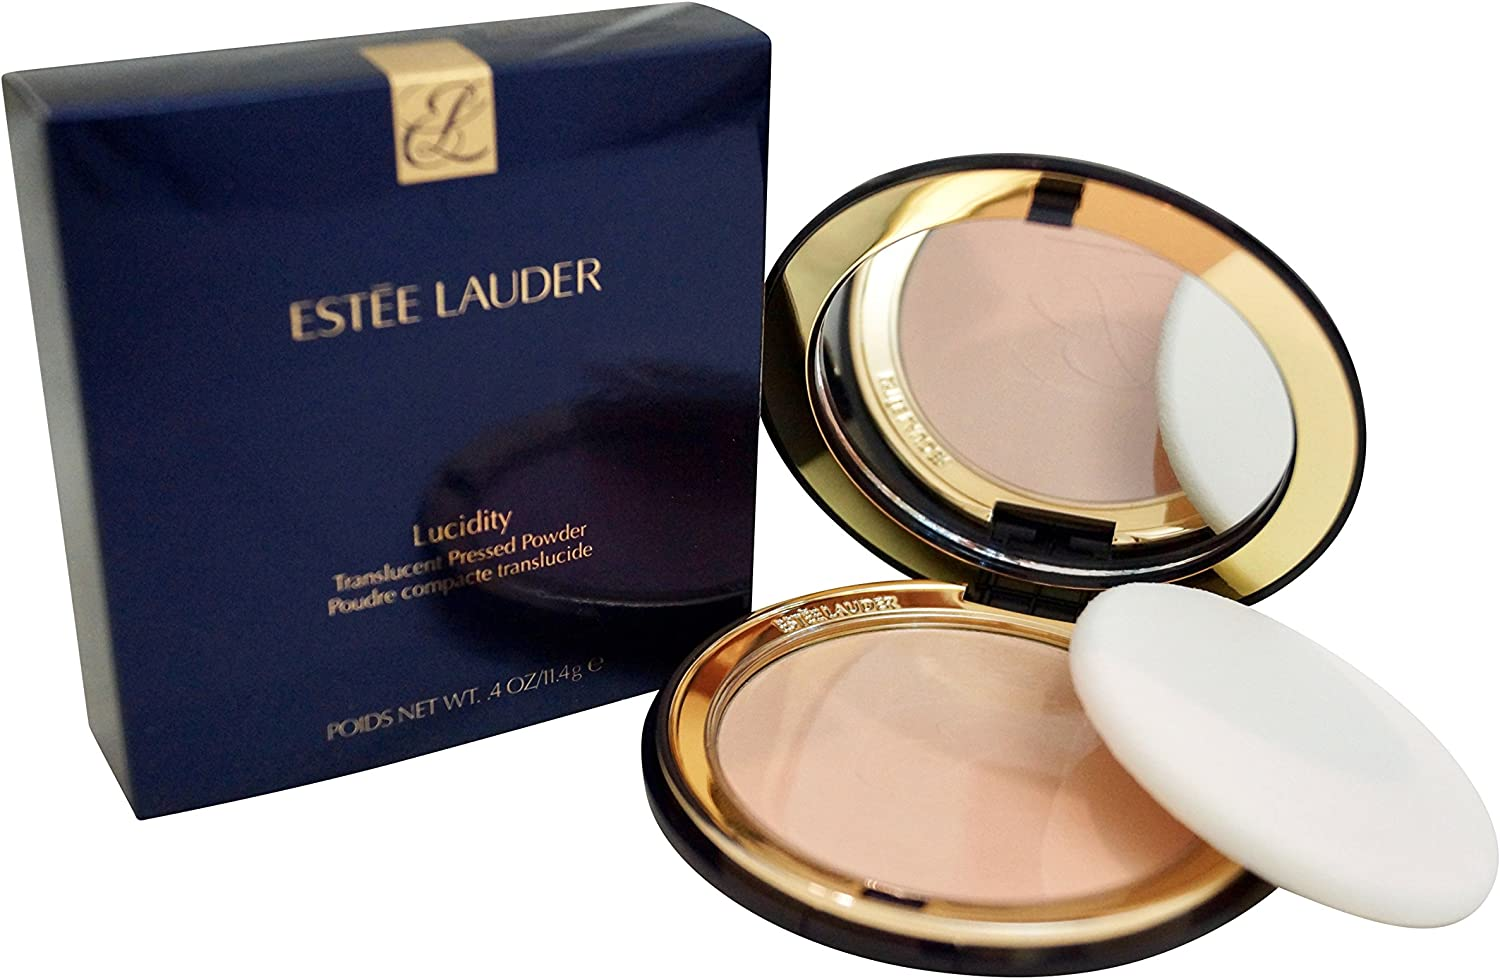 B0002DP4MY Estee Lauder Lucidity Translucent Pressed Powder, No. 02 Light/Medium-Normal/Combination/Dry Skin, 0.4 Ounce 81pKw80HlNL